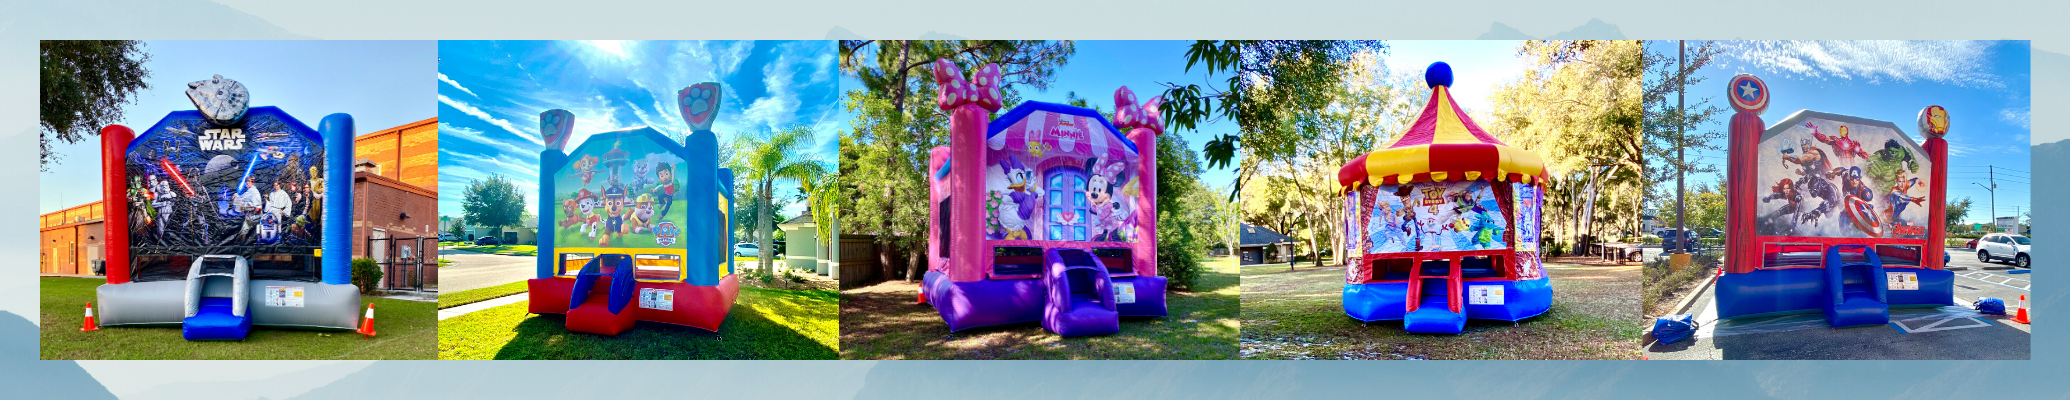 Star Wars, Paw Patrol, Minnie, Toy Story 4, Avengers Bounce Houses